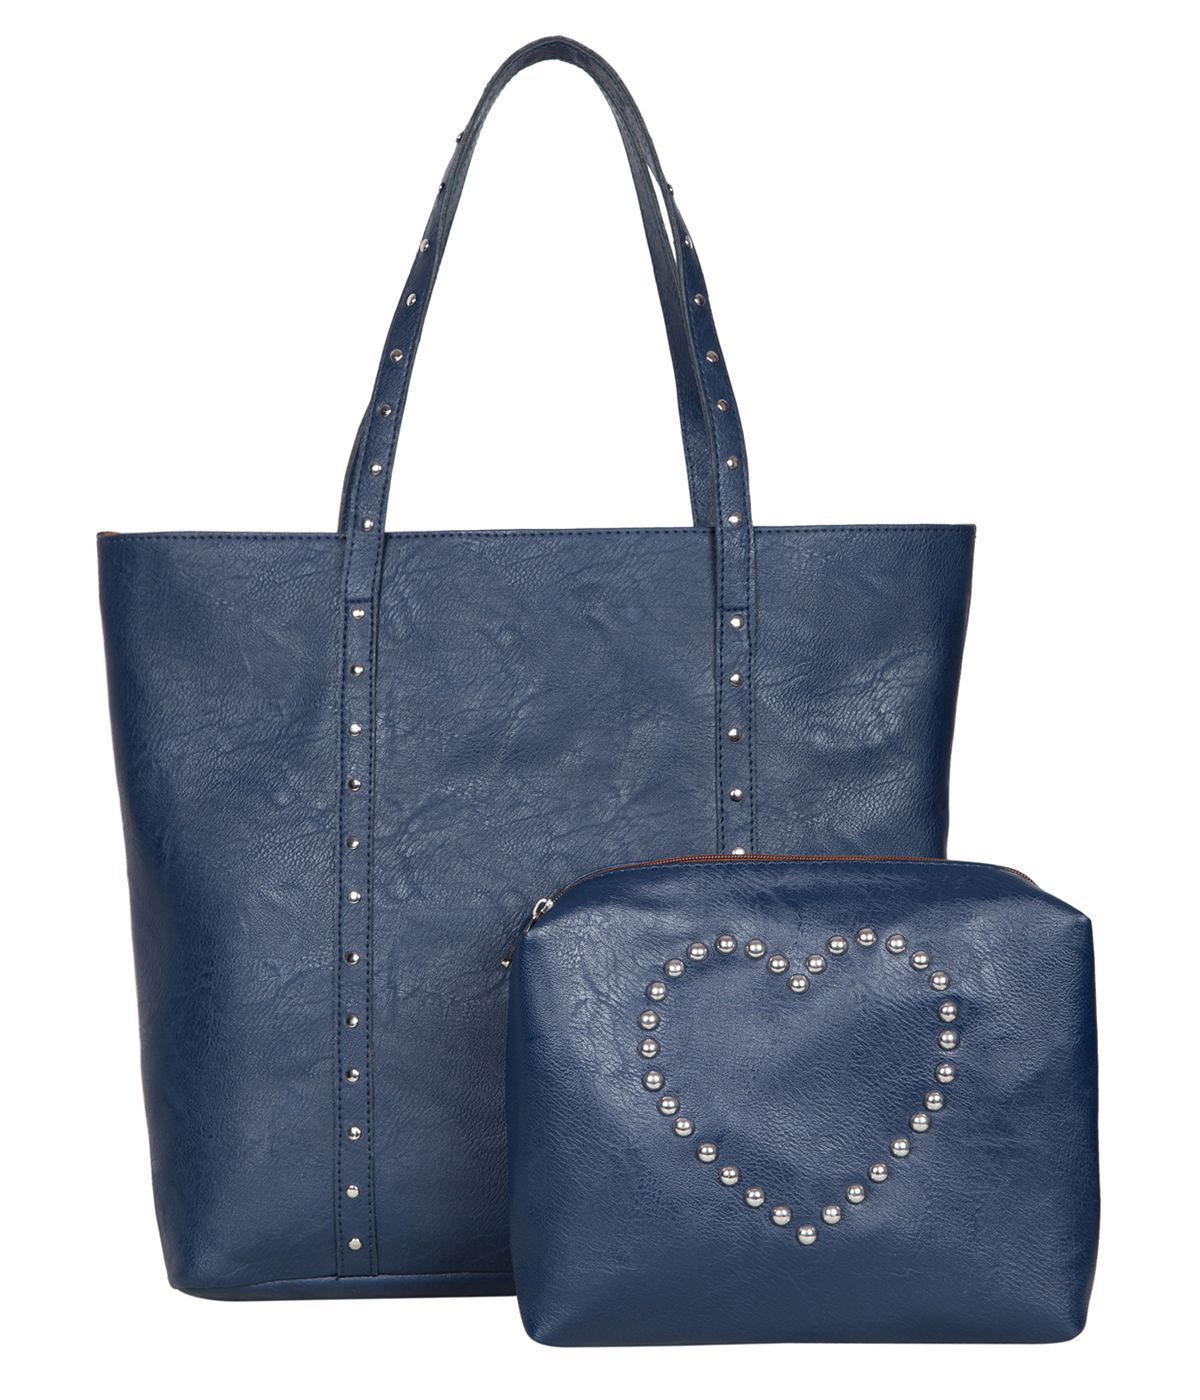 704b603d8f Bagsy Malone Navy Faux Leather Tote Bag - Buy Bagsy Malone Navy Faux  Leather Tote Bag Online at Best Prices in India on Snapdeal